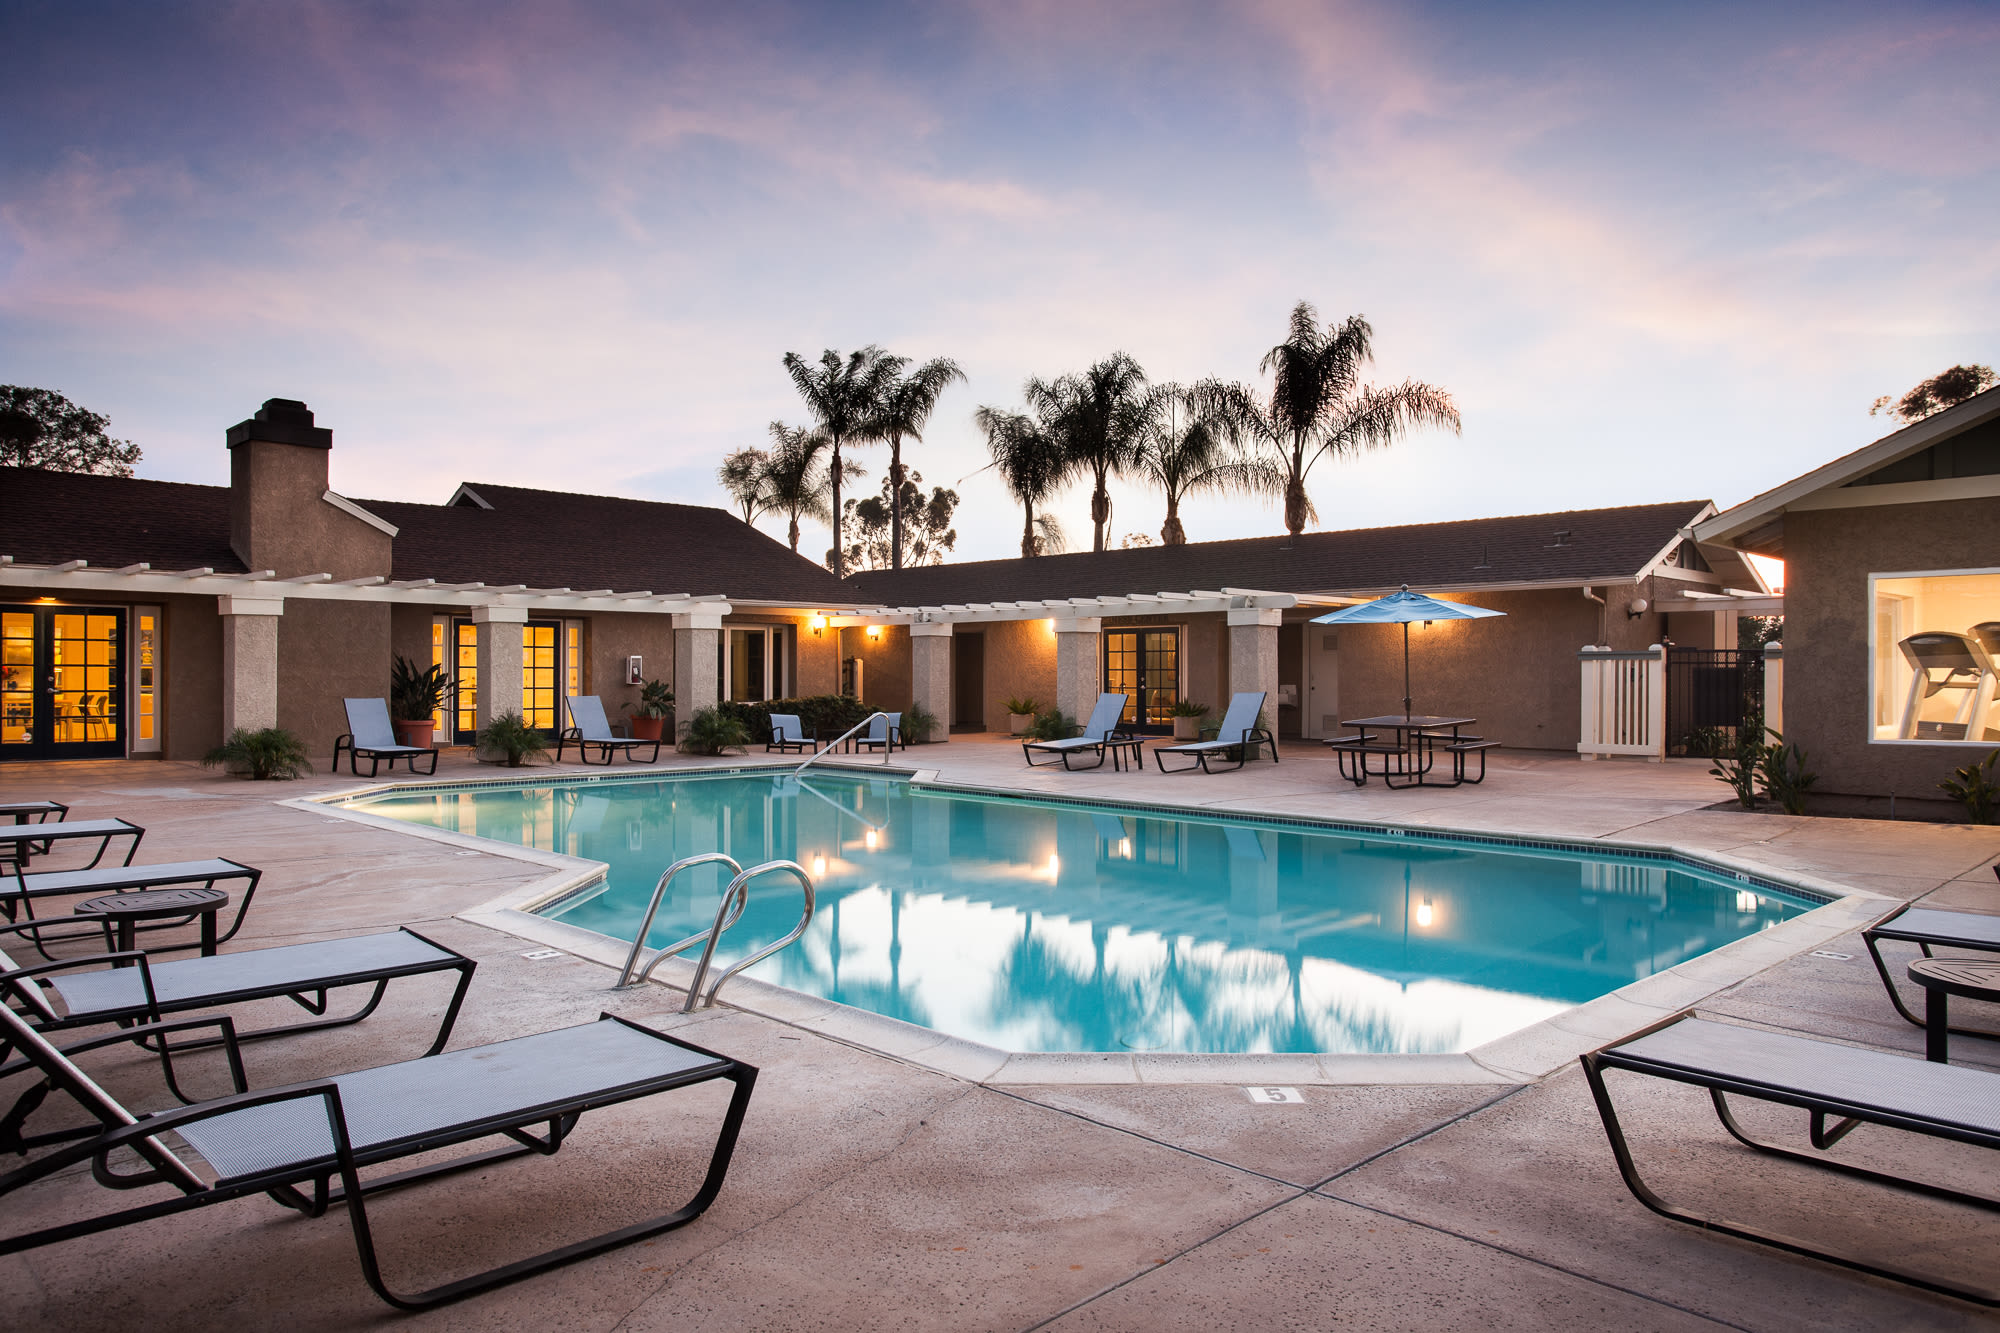 Spring Valley Ca Apartments Near San Diego Lakeview Village